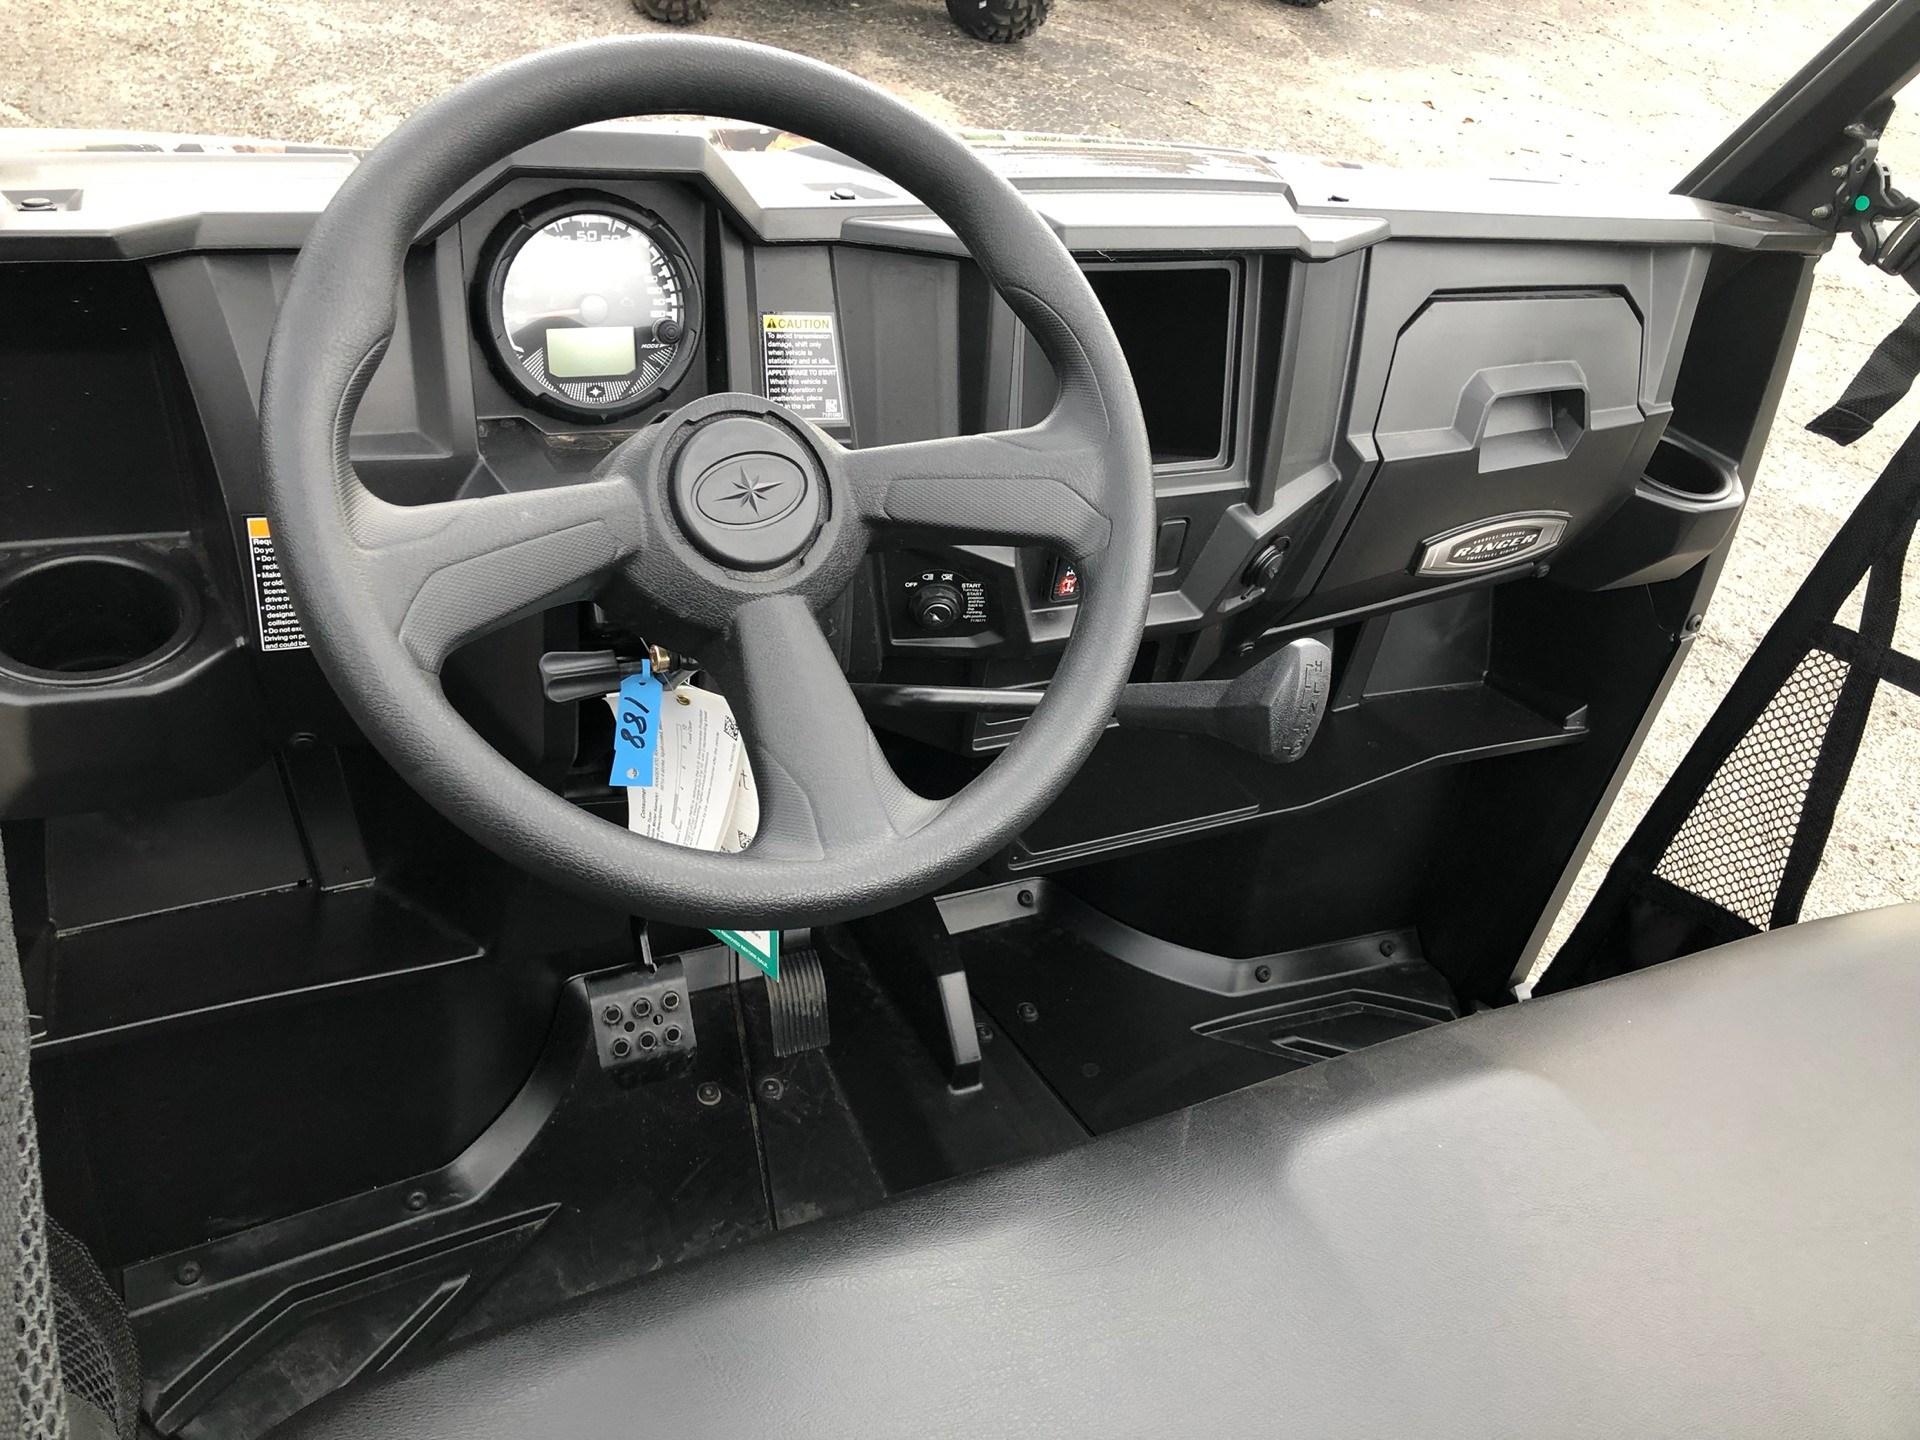 2019 Polaris Ranger 570 Polaris Pursuit Camo in Cleveland, Texas